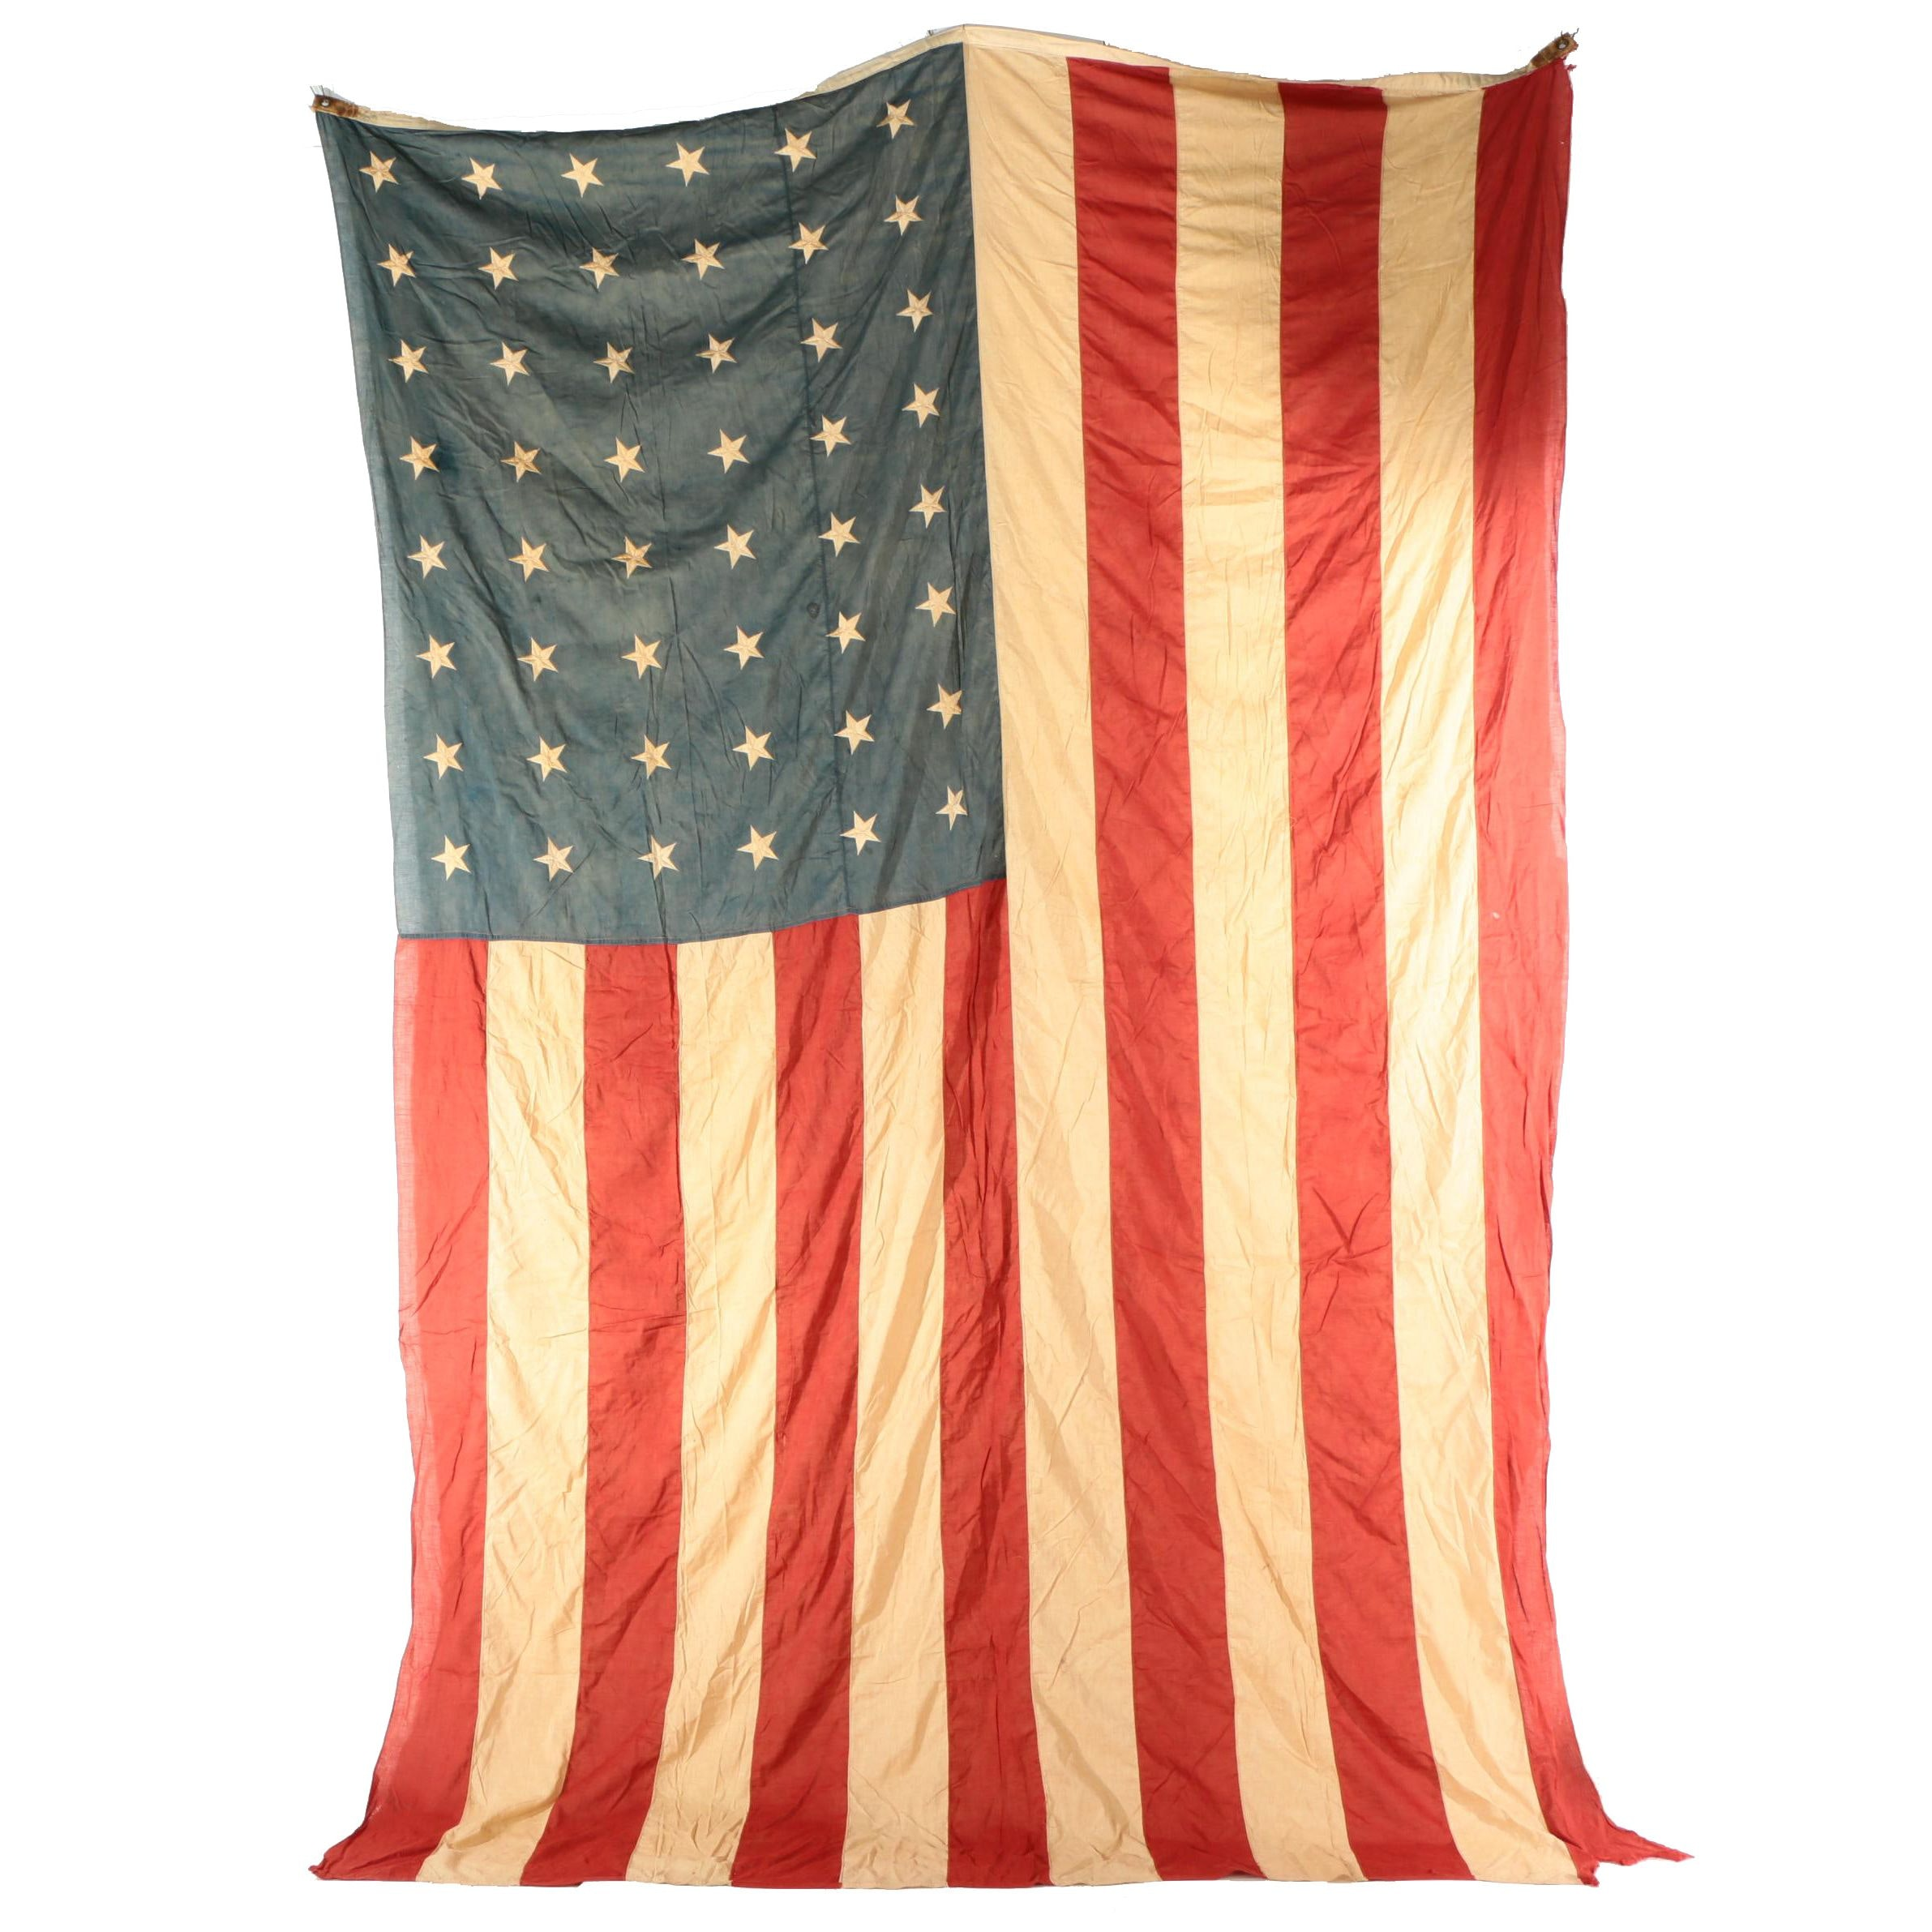 Large 48 Star American Flag, 1912 - 1959